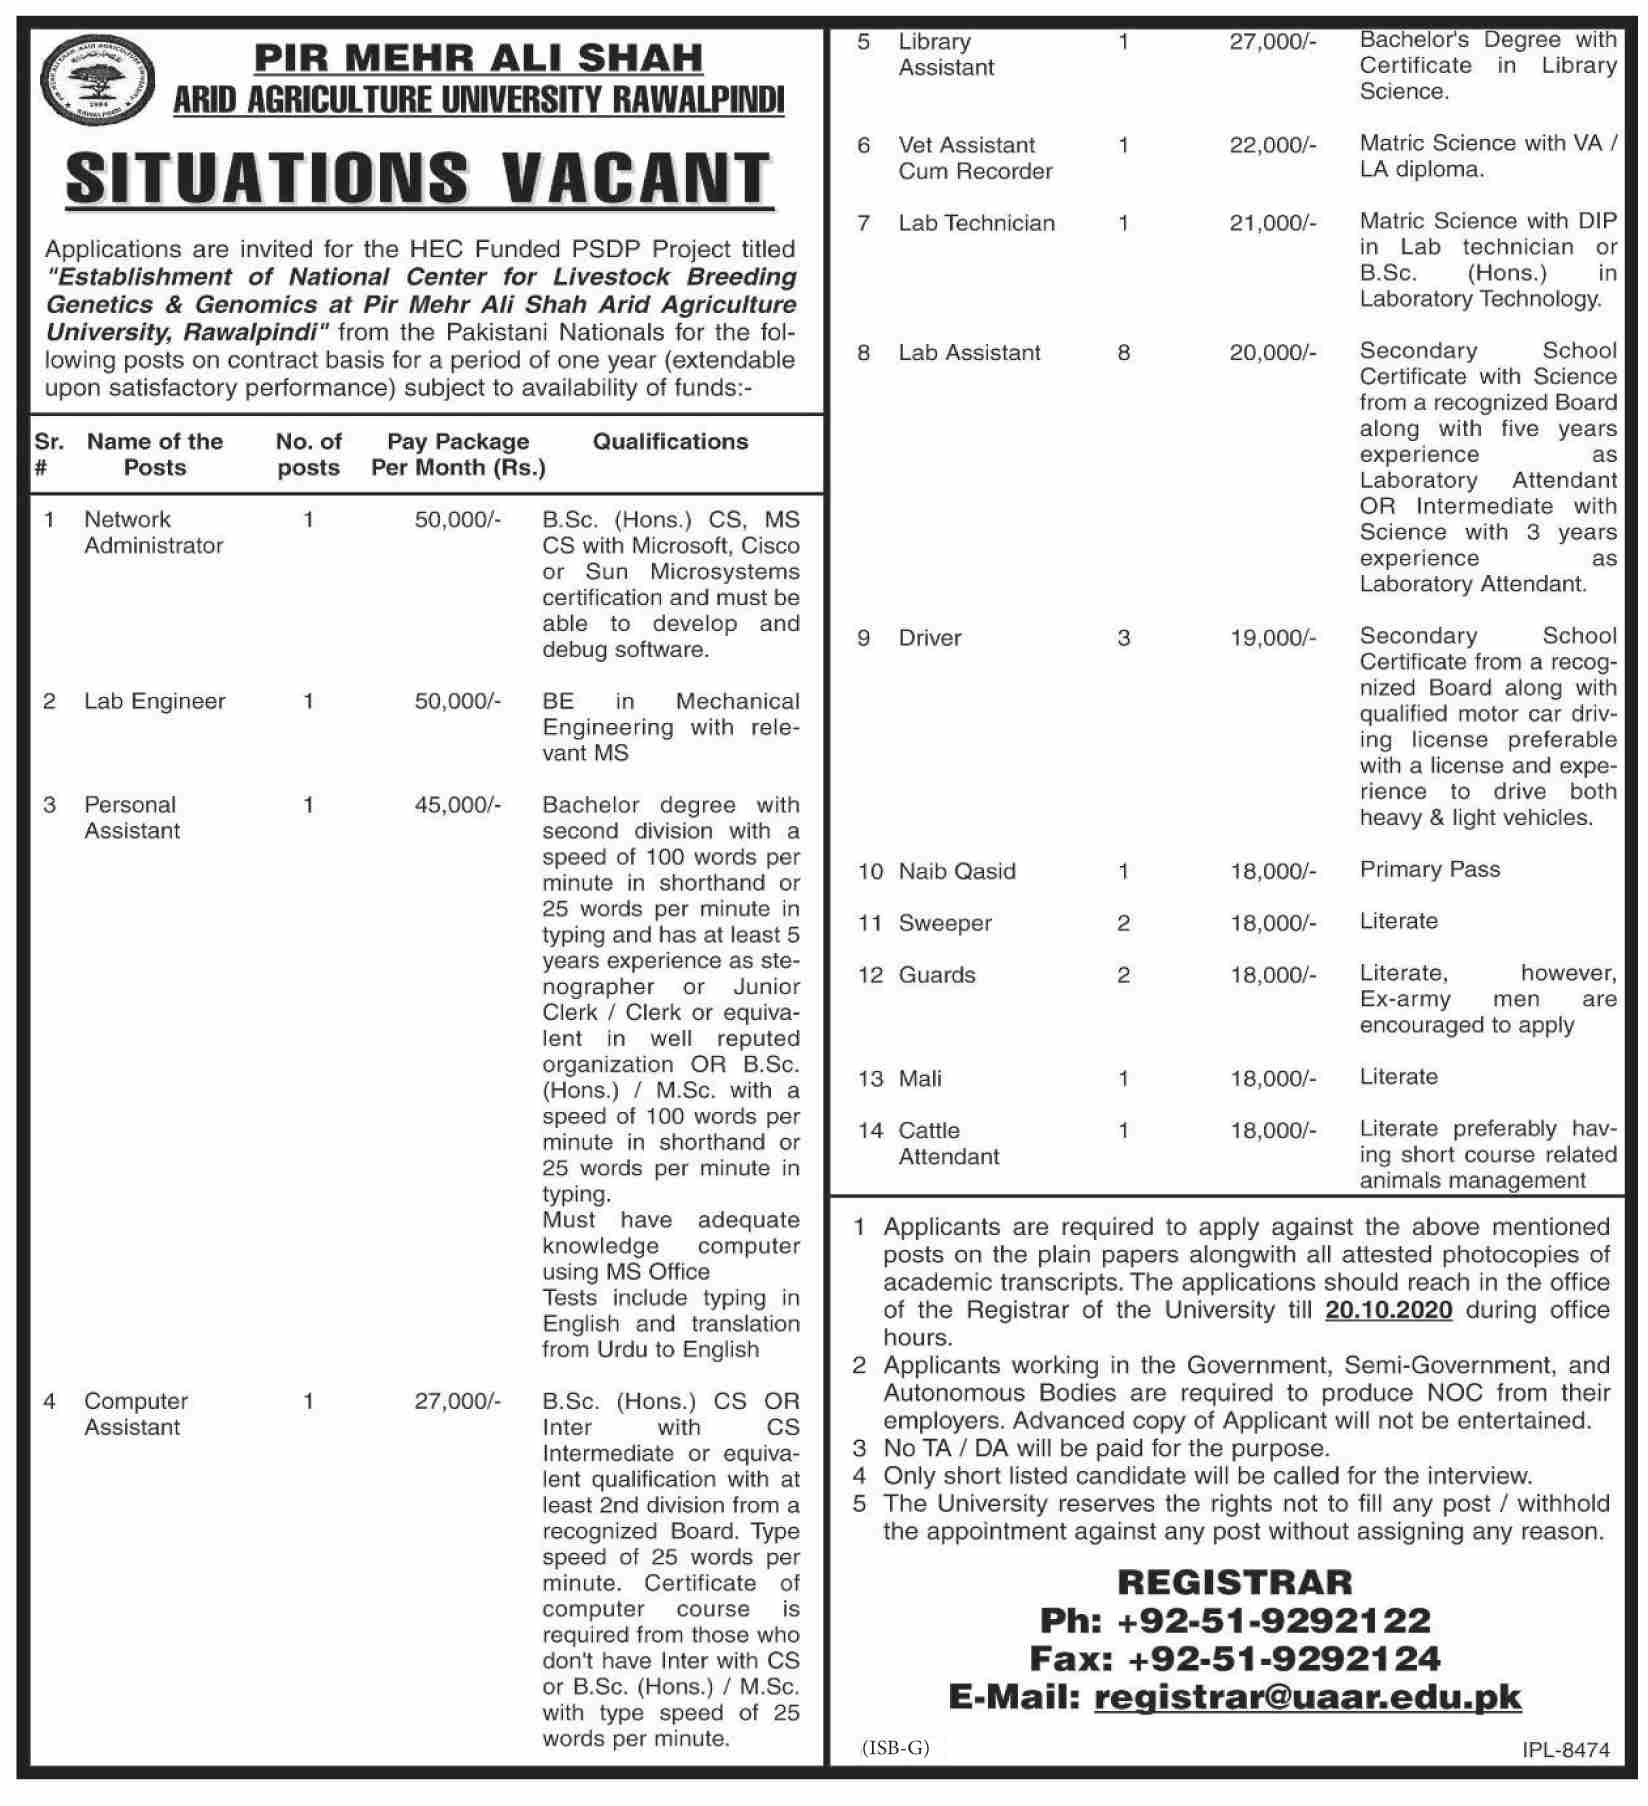 Pir Mehr Ali Shah Arid Agriculture University Job Advertisement For Male and Female in Pakistan.